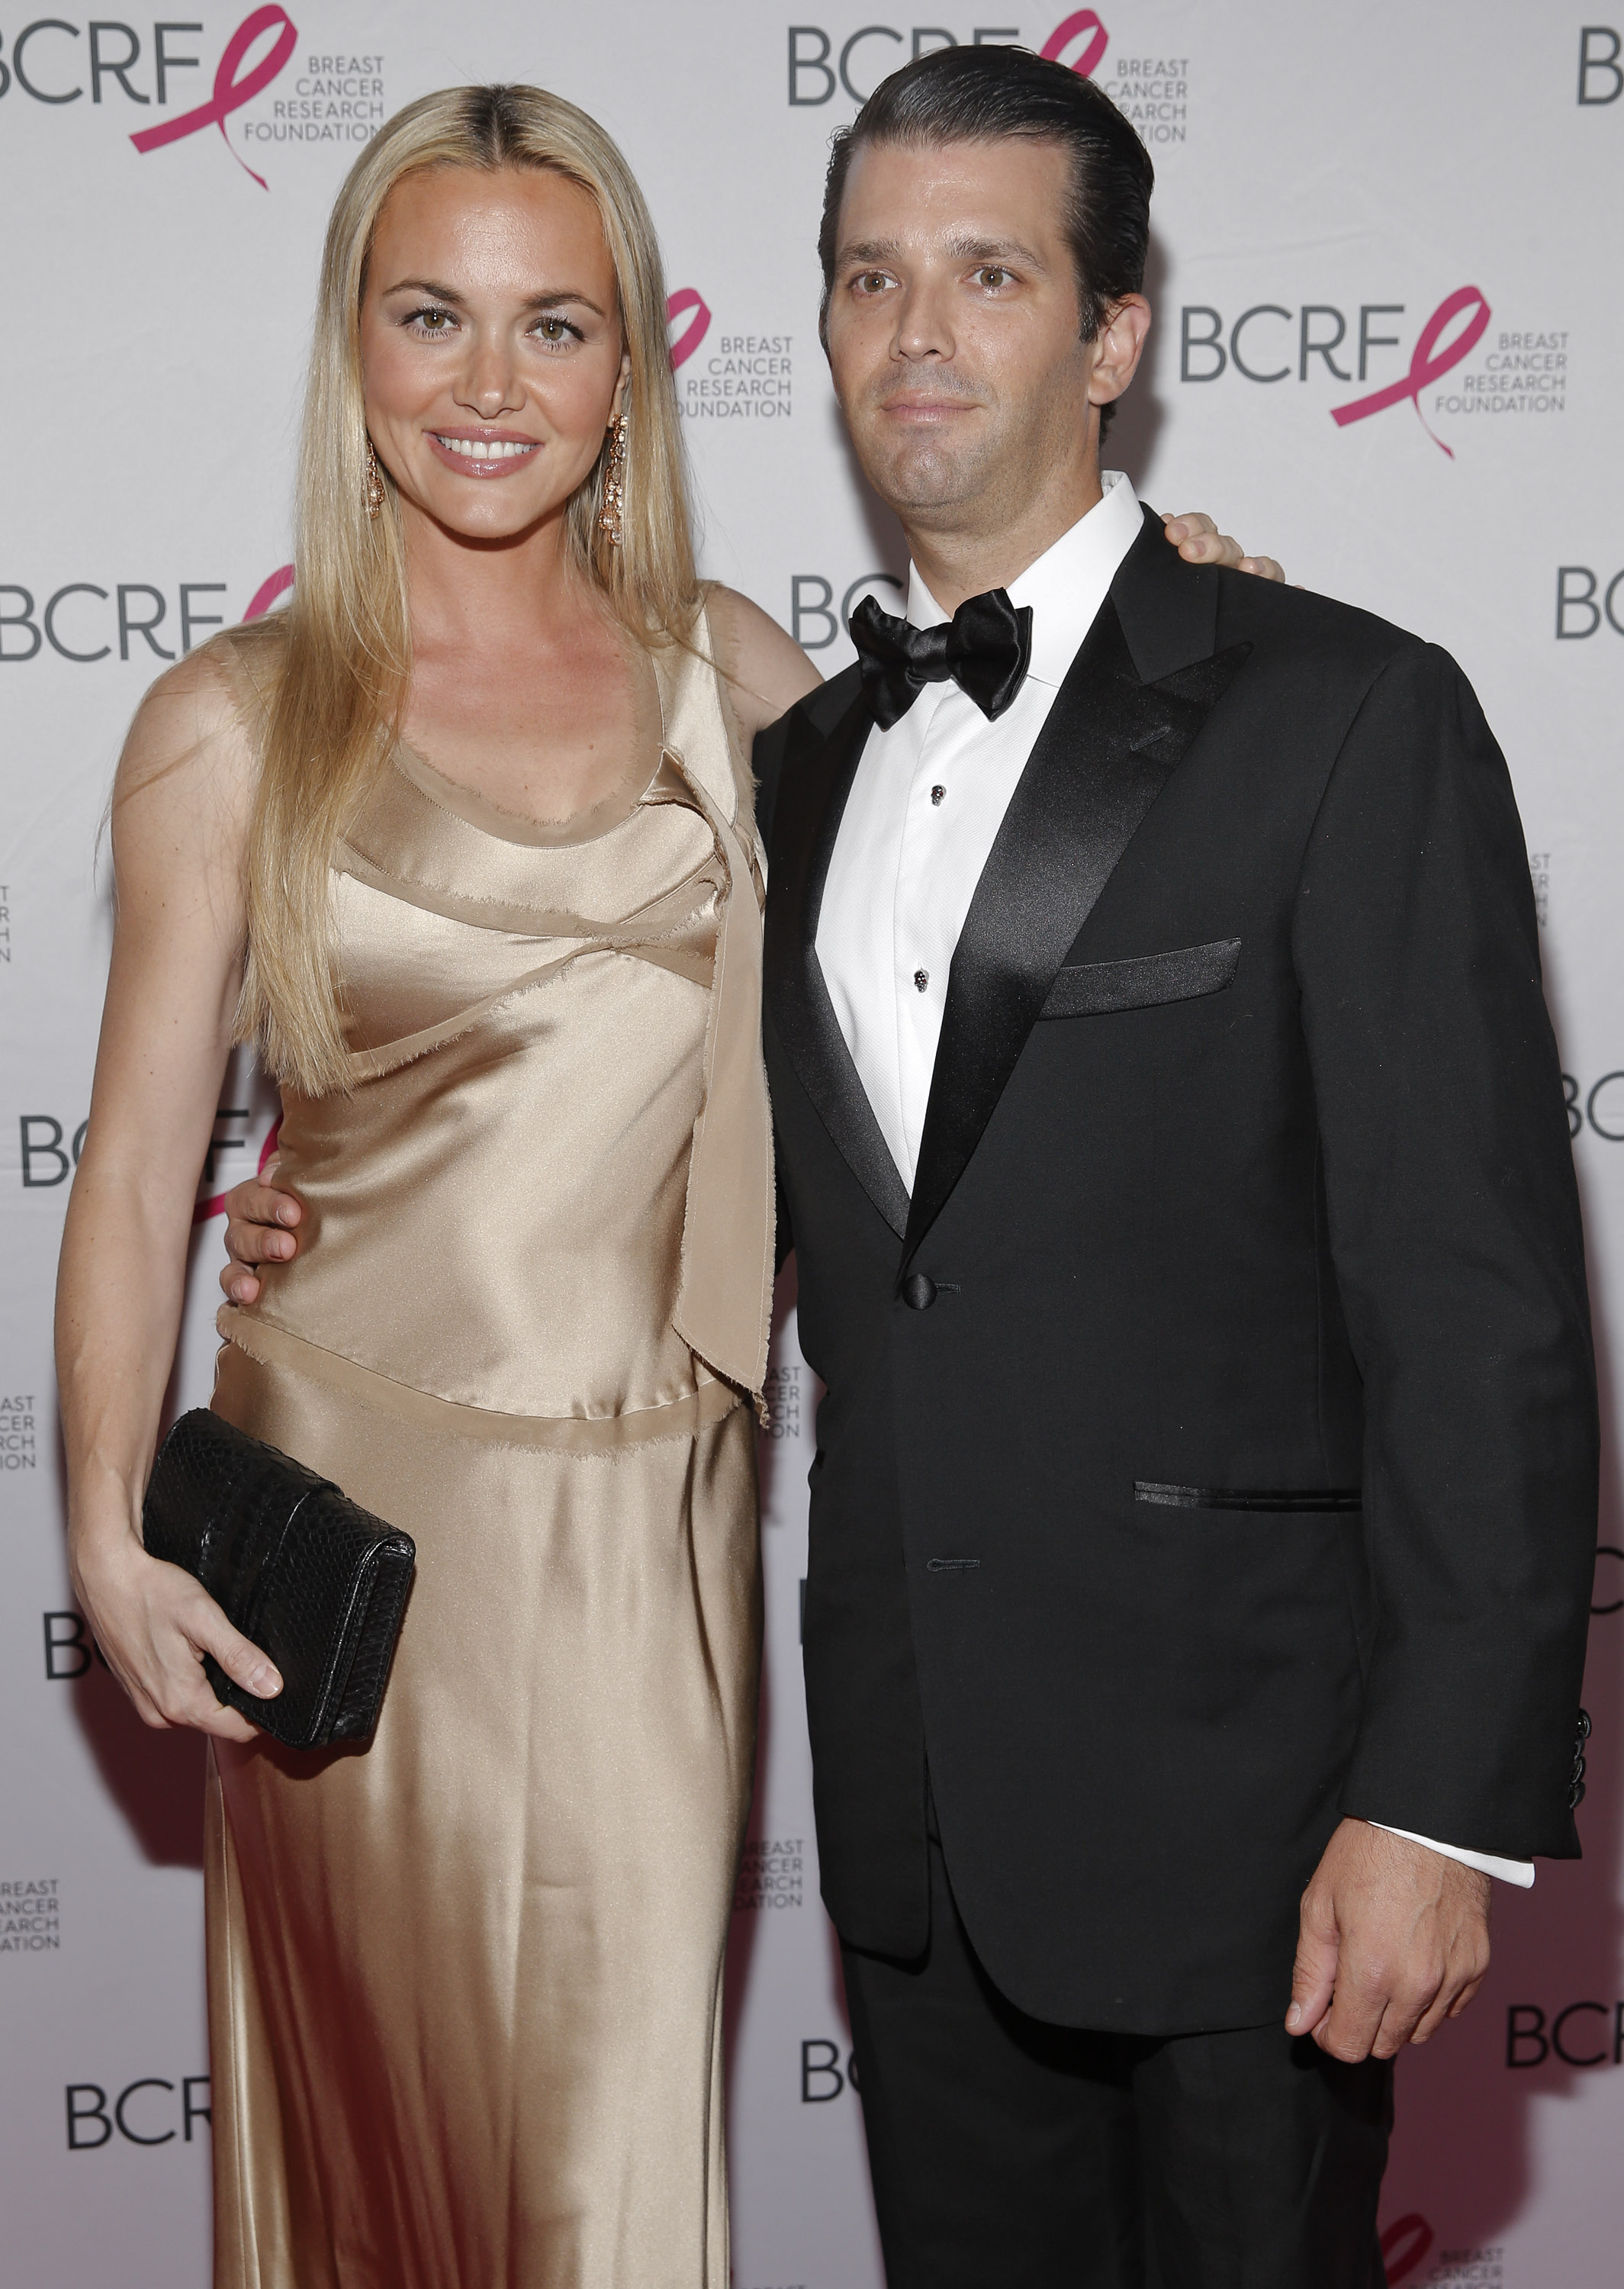 vanessa trump, vanessa haydon trump, donald trump jr wife, donald trump daughter in law